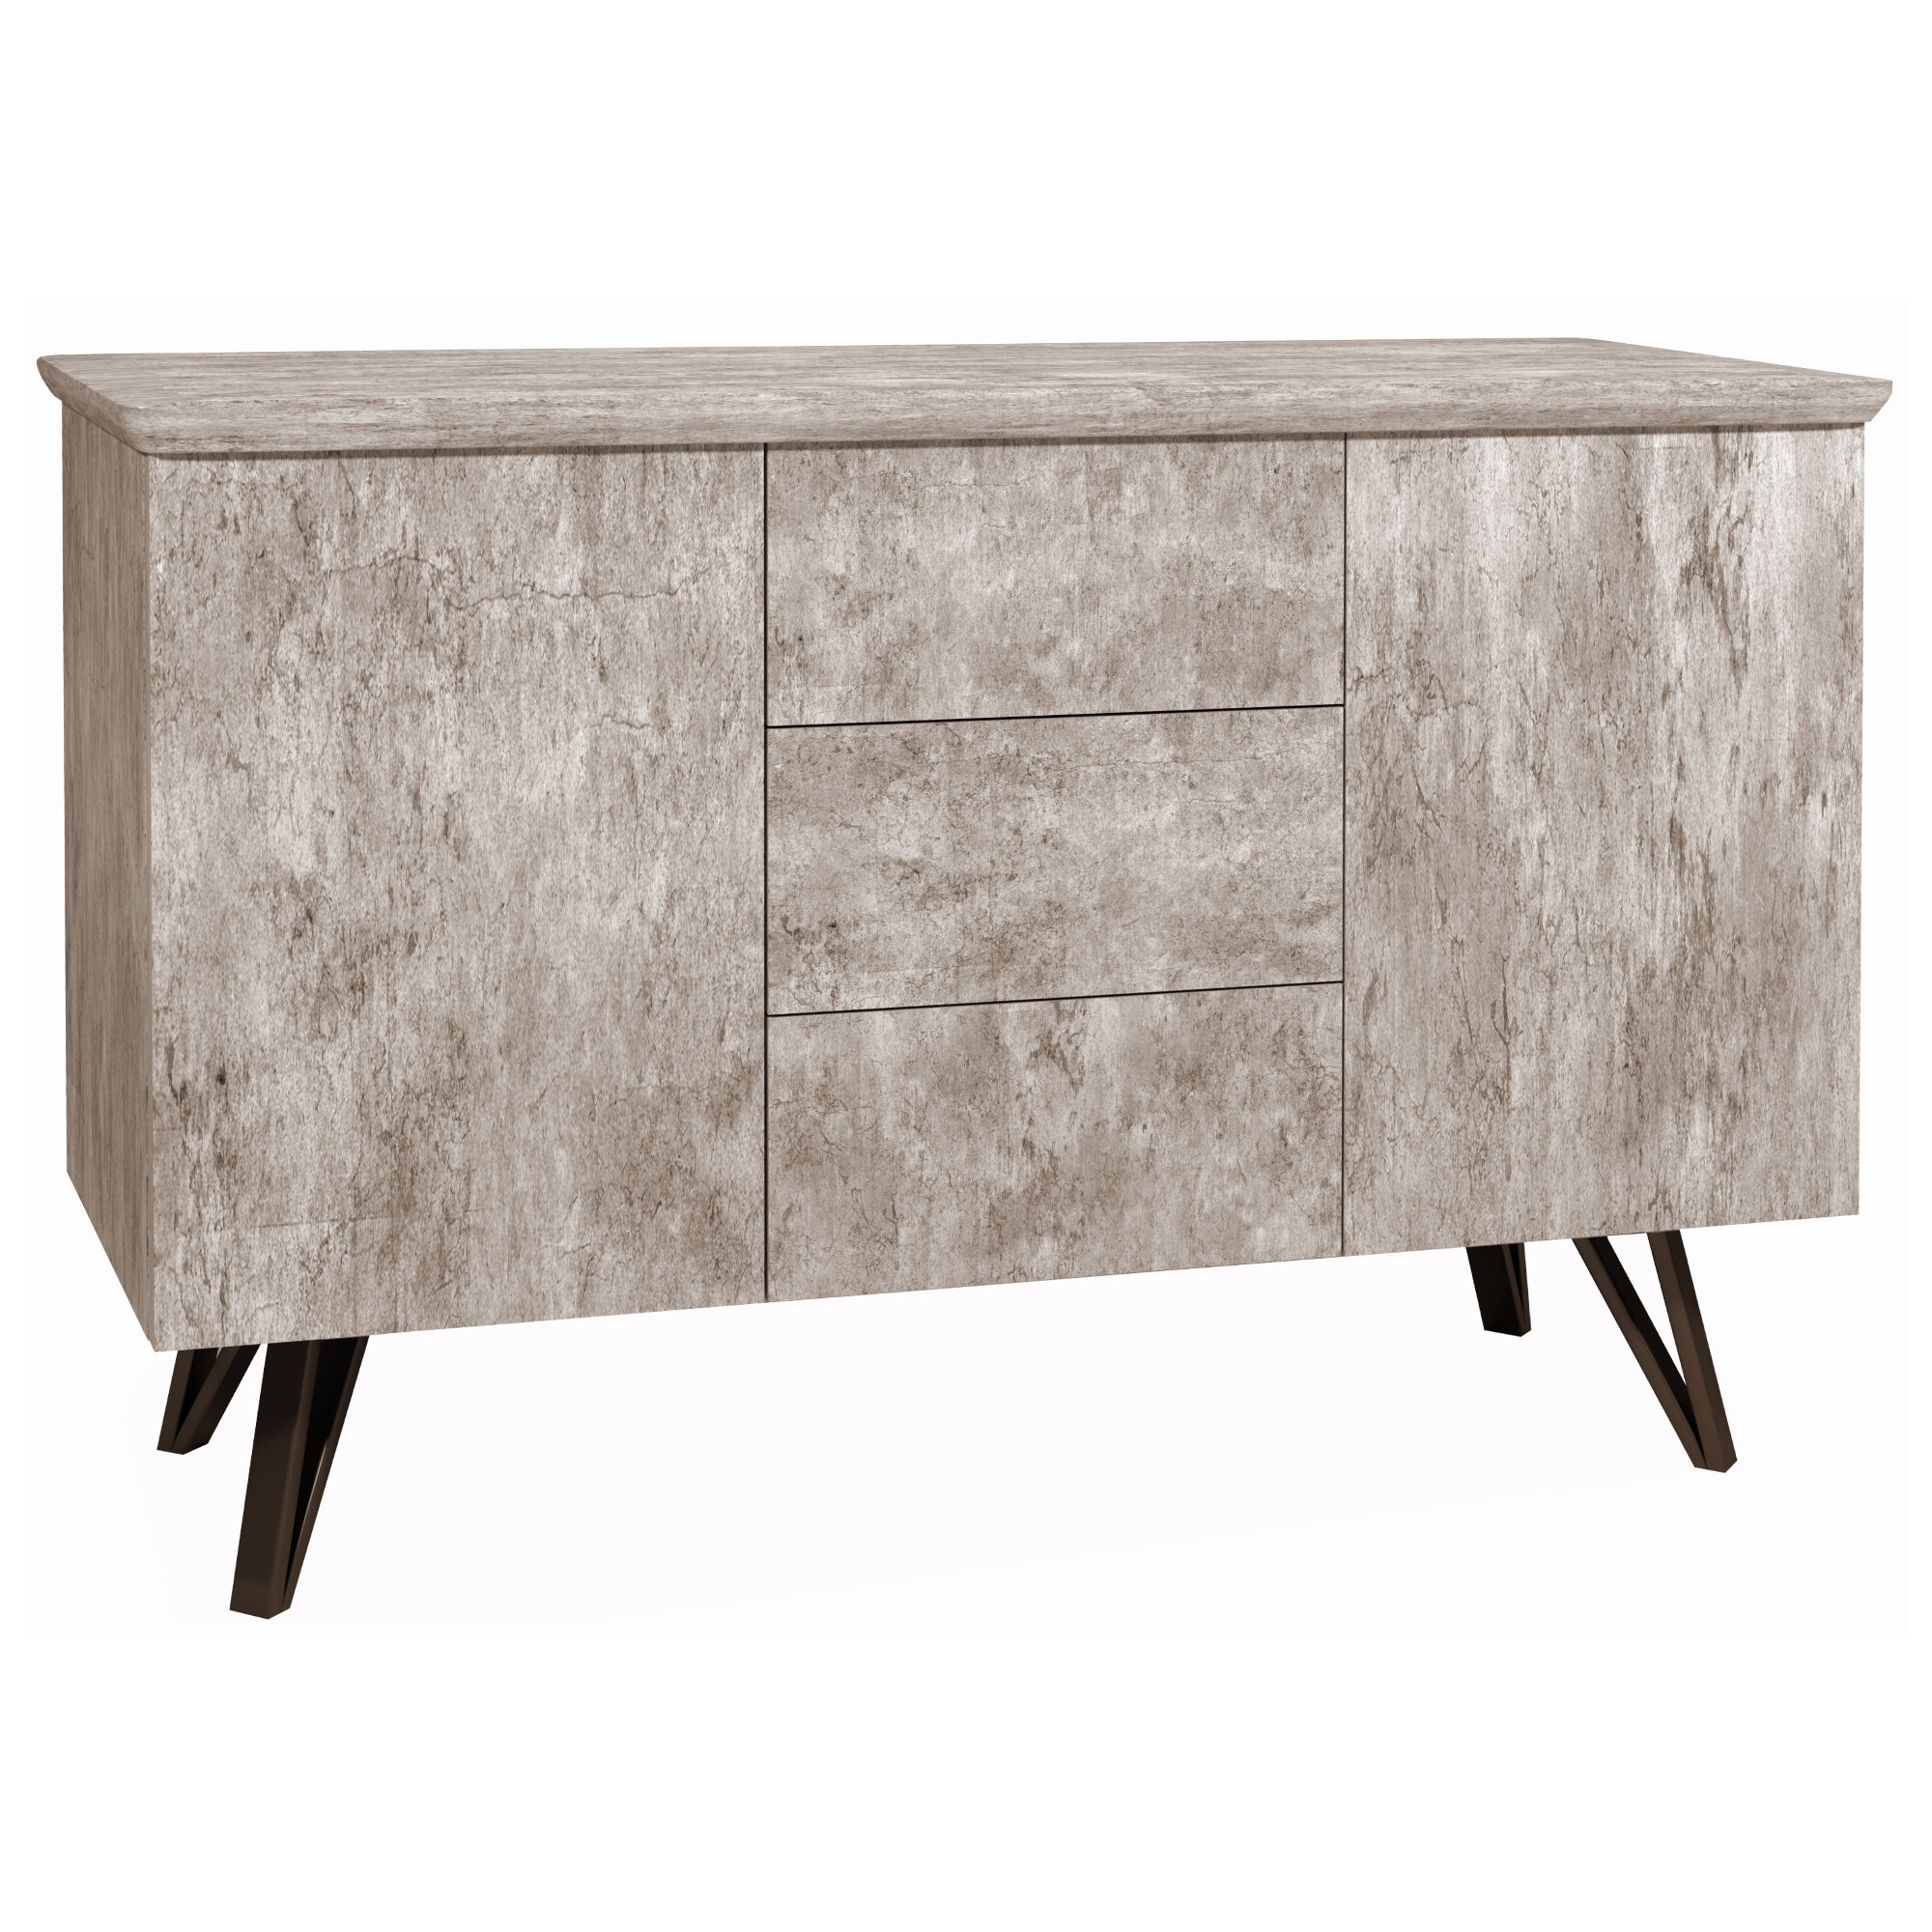 Hazzard Sideboard With Emmaline Sideboards (View 6 of 30)